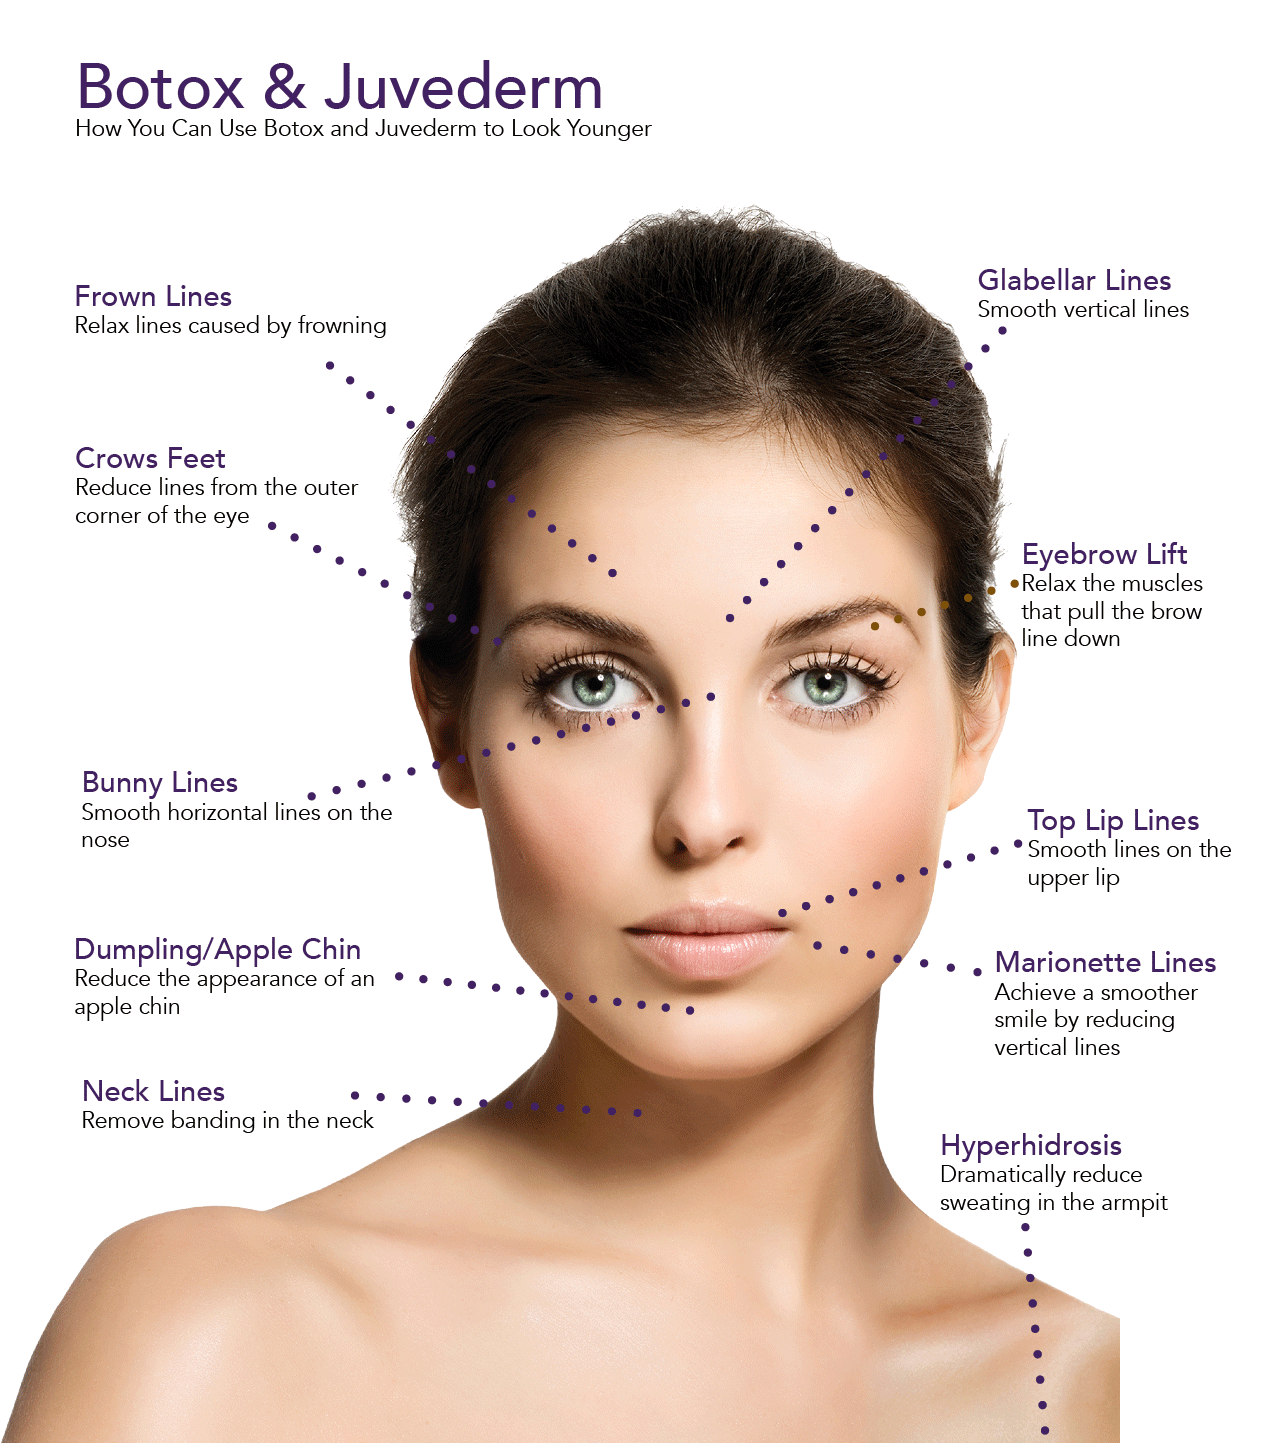 hight resolution of botox juvederm diagram of face